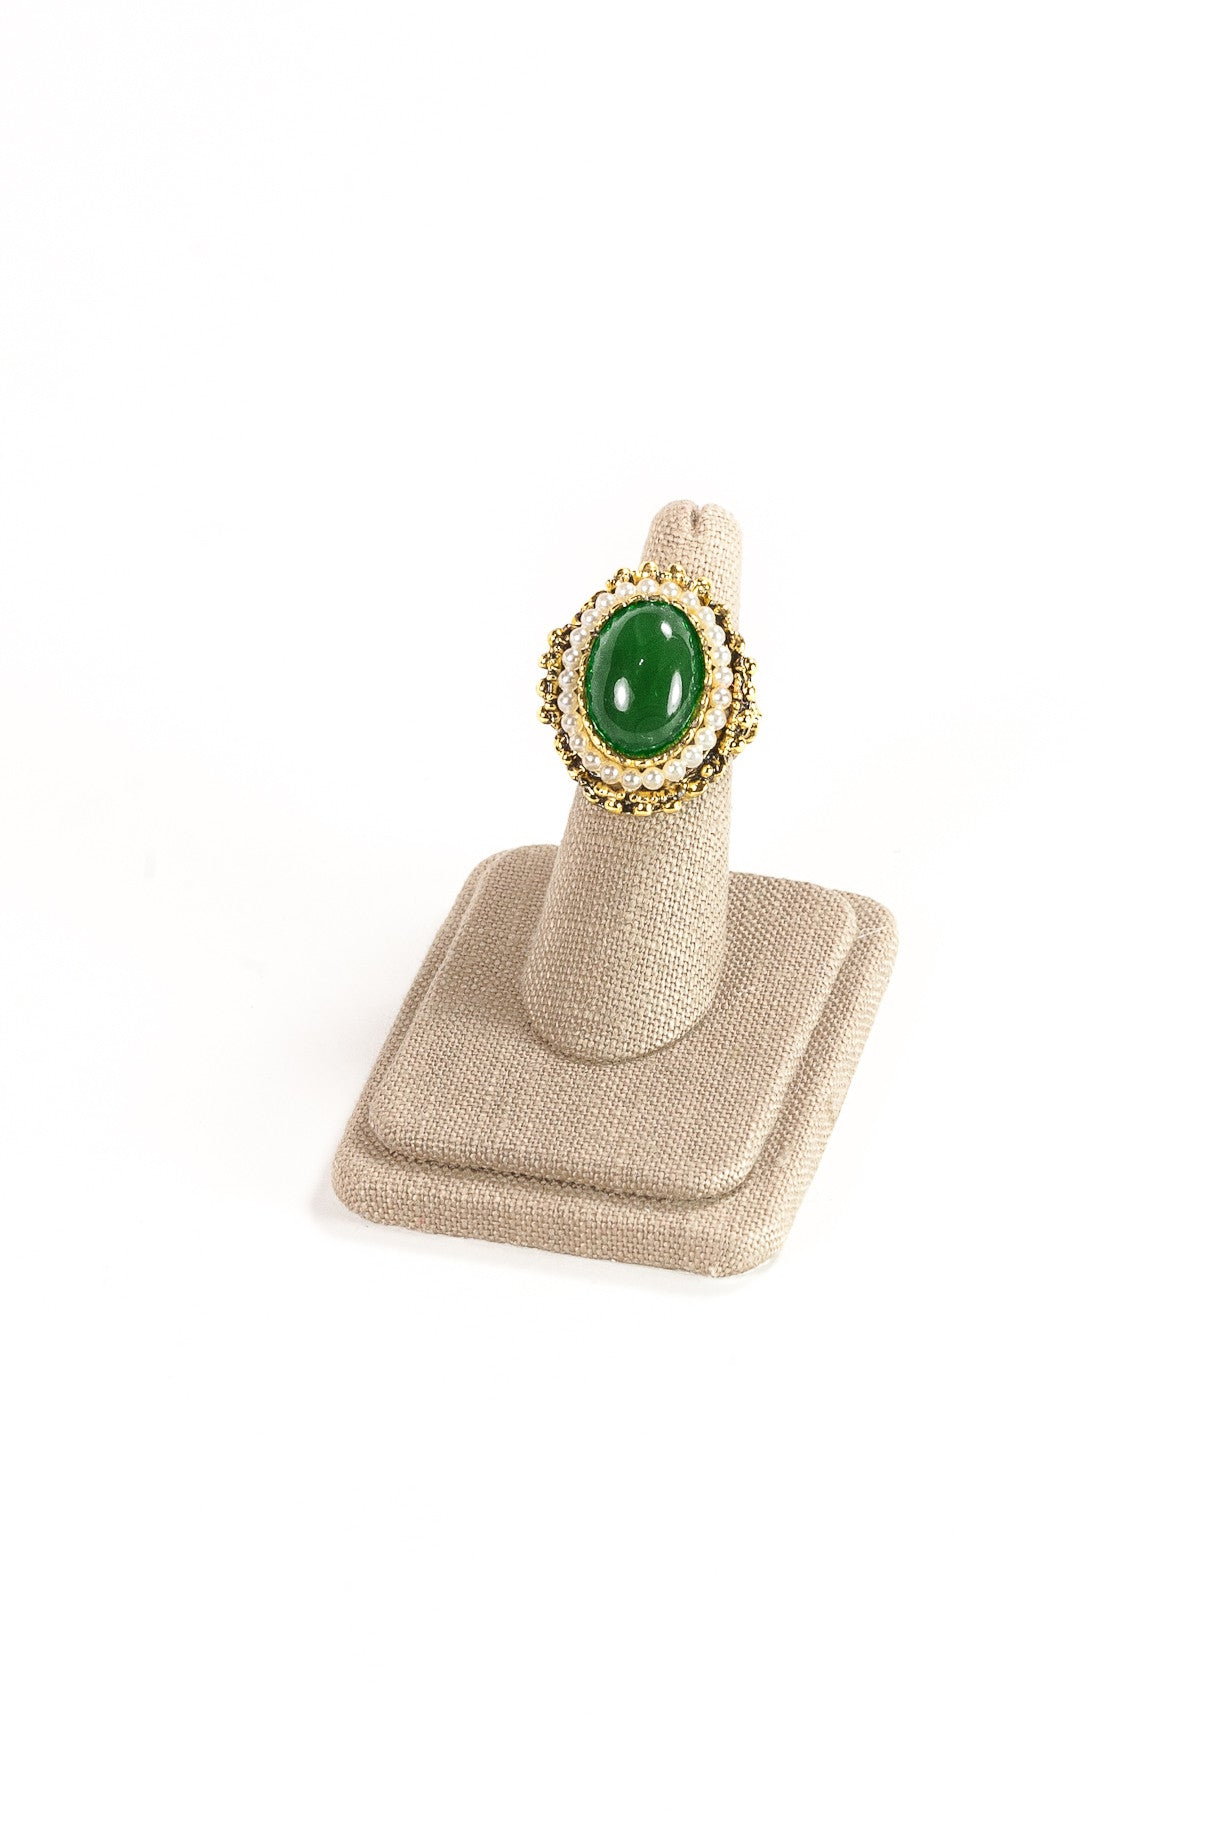 60's__Vintage__Statement Green Stone Ring